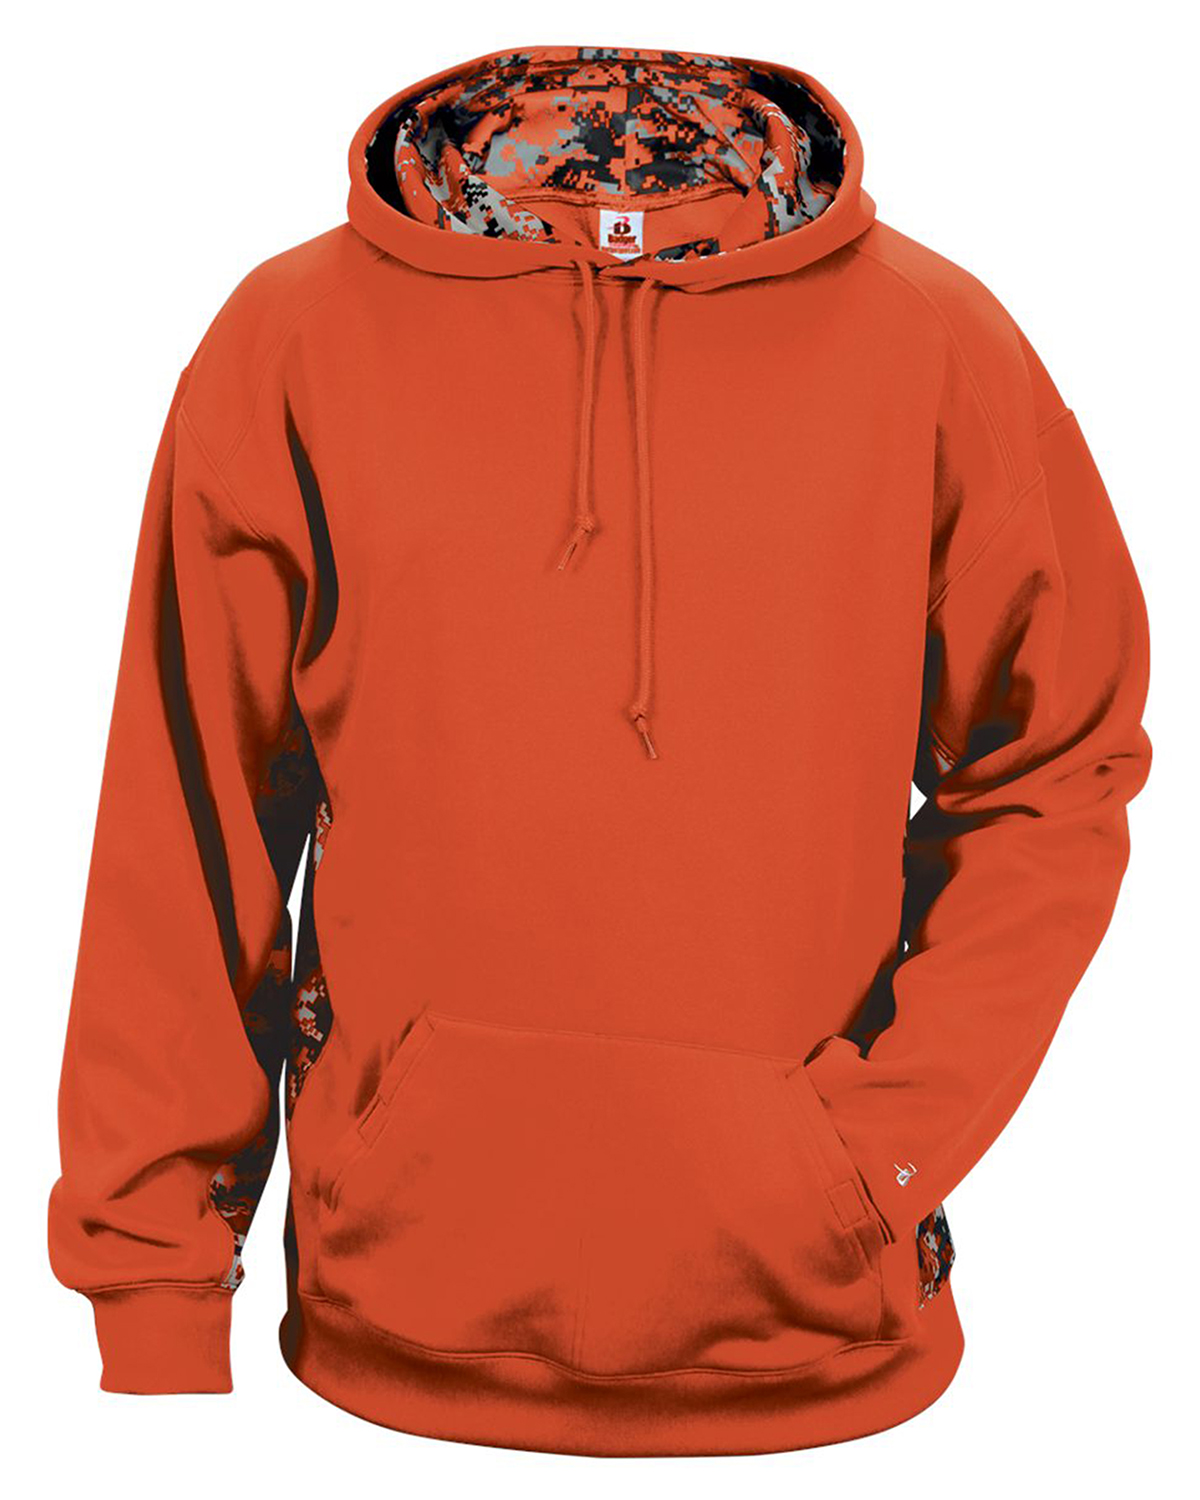 Badger Sport 1464 - Adult Digital Color Block Hooded ...